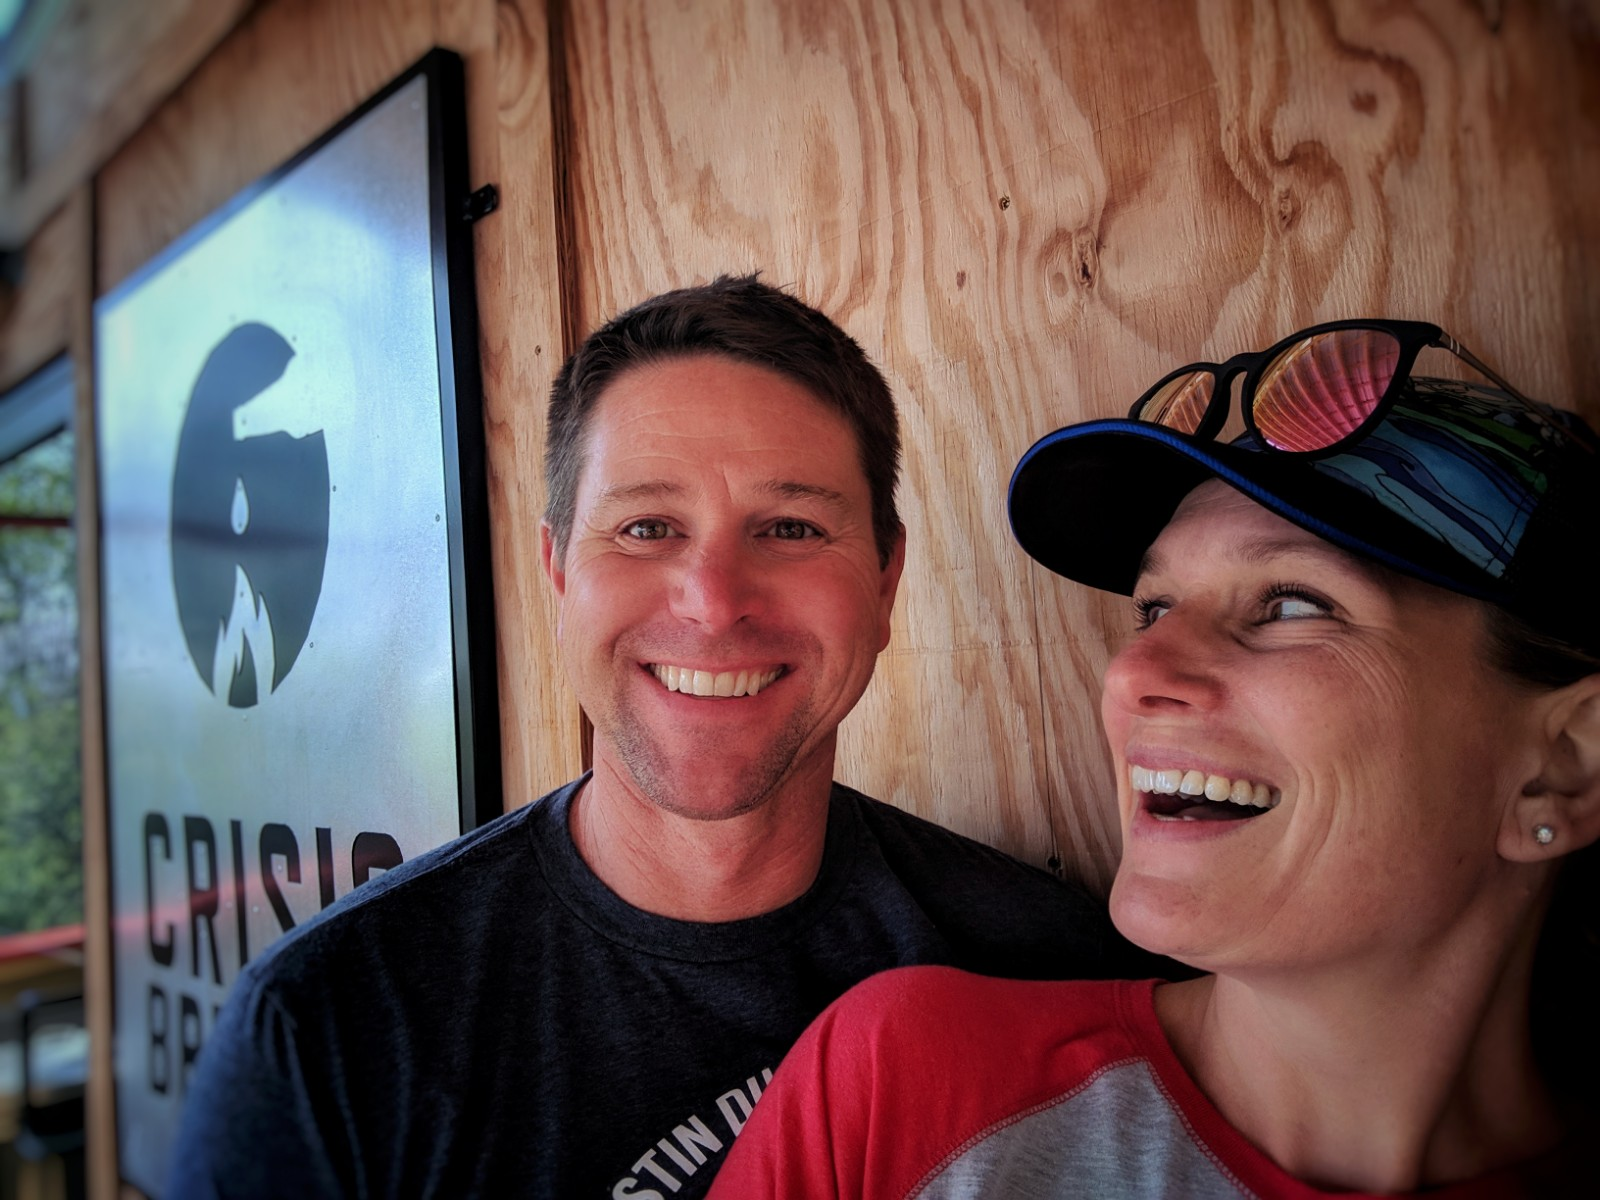 Owners of Crisis Brewing Company